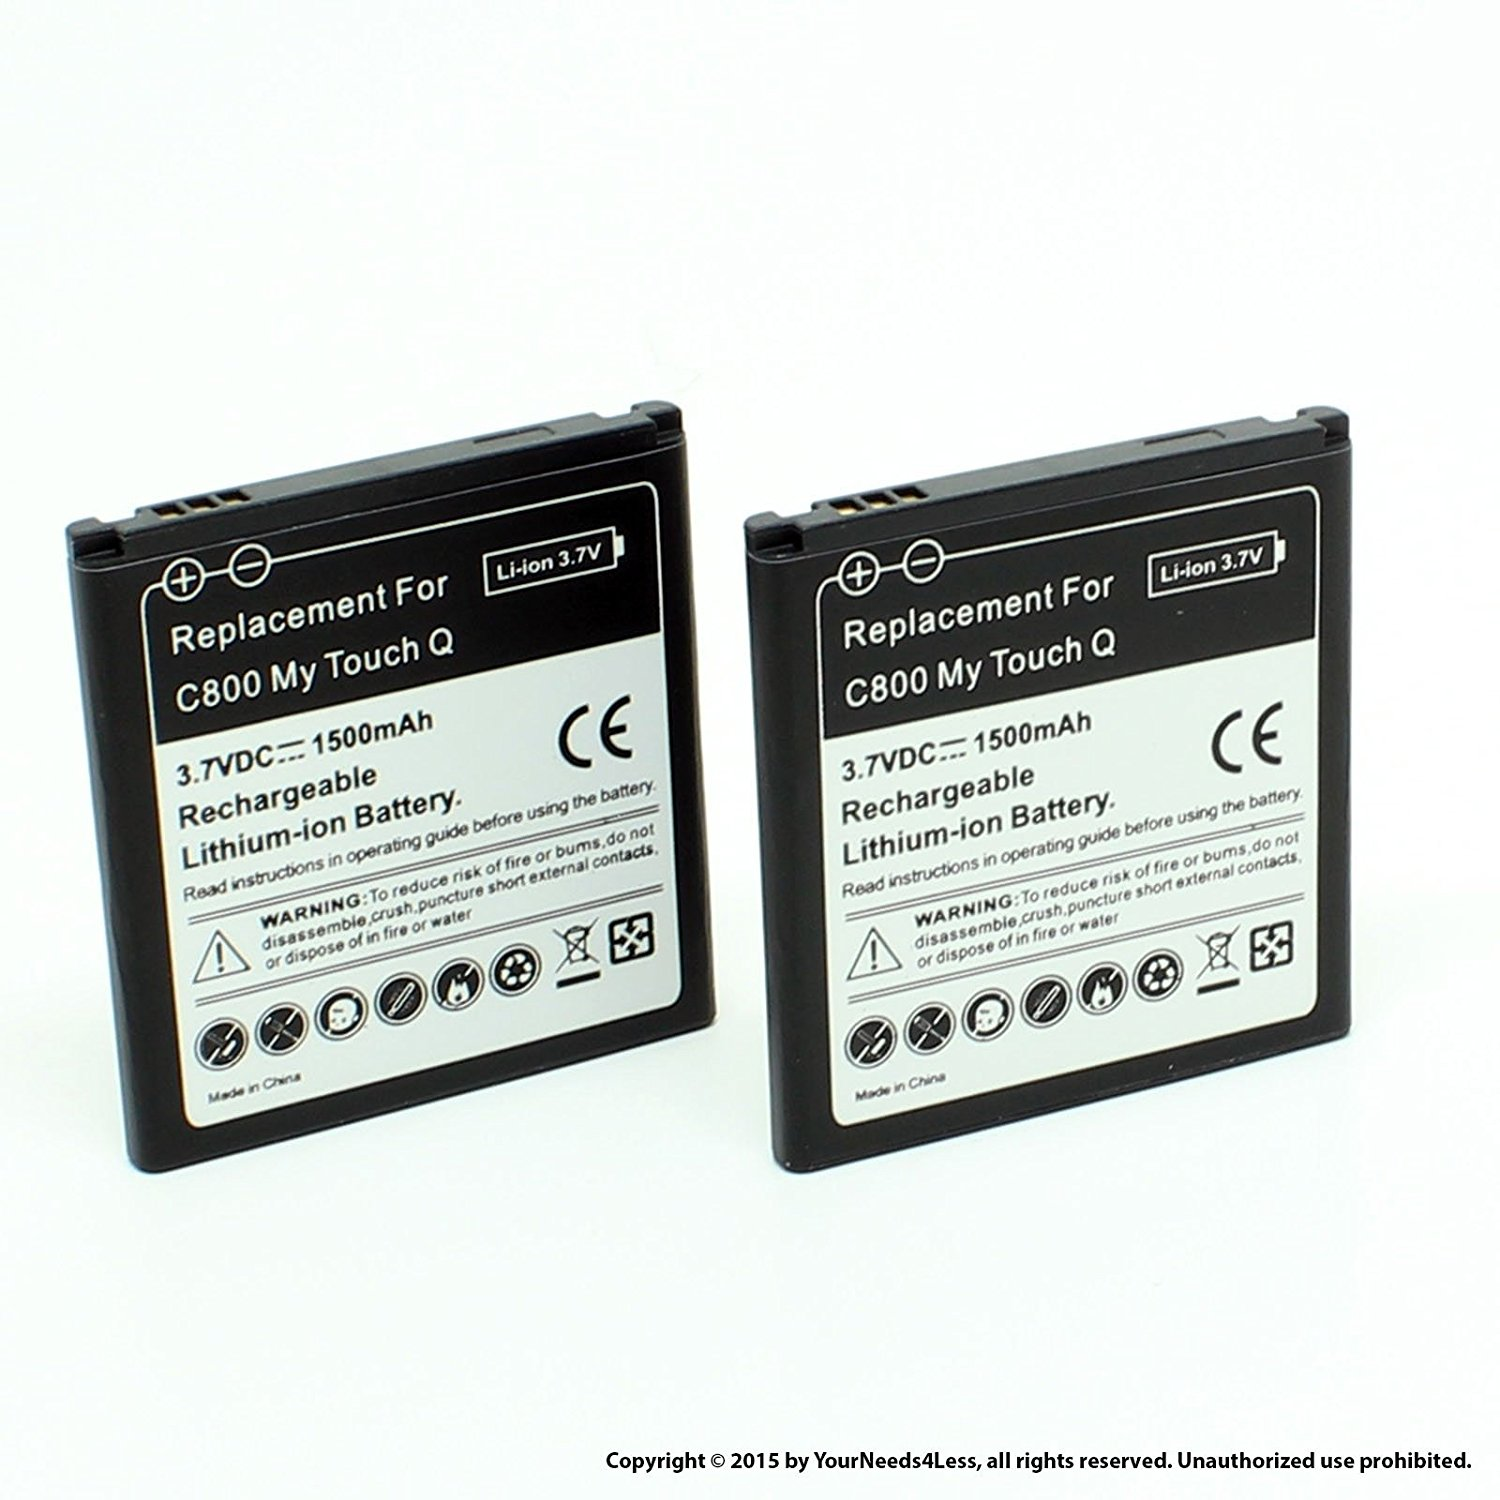 YN4L 2 X 1500mAh Replacement Batteries for LG My touch Q(C800) ; Optimus Elite LS696 (Sprint & Virgin Mobile)